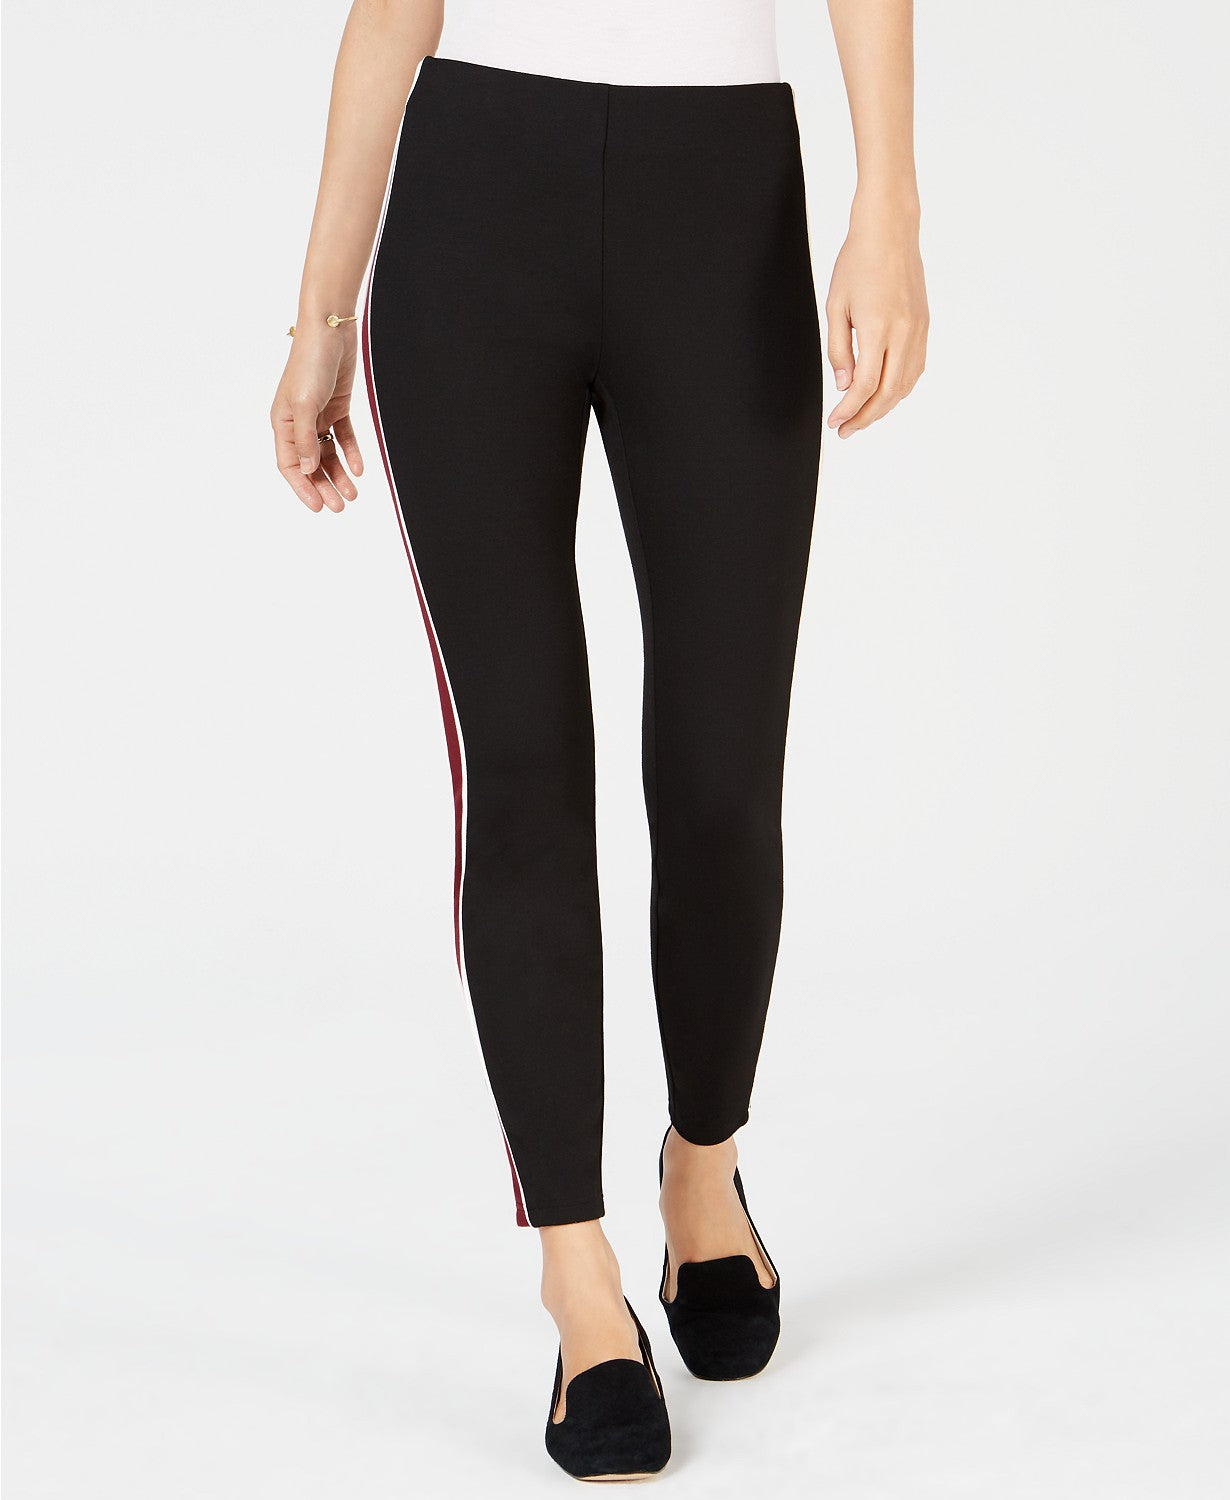 Maison Jules Pull-On Striped Skinny Pants Deep Black